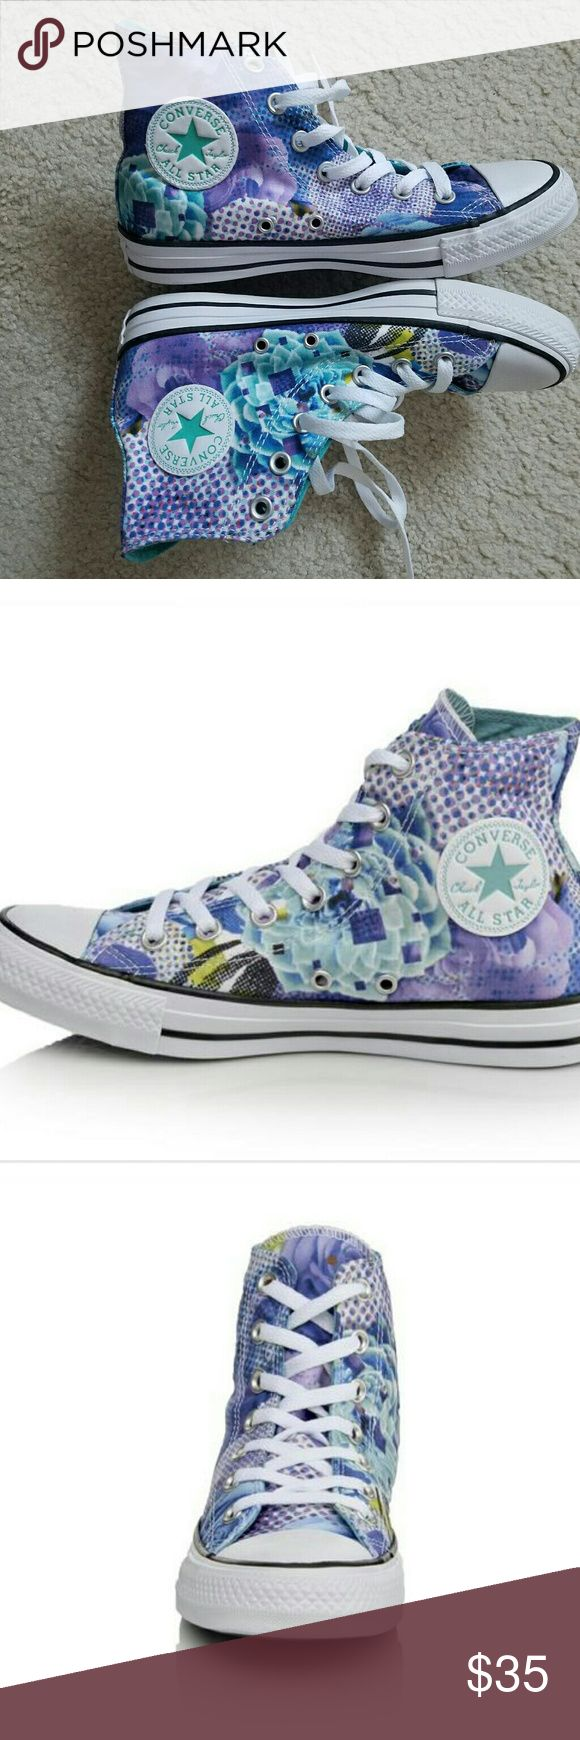 Brand new womens All star converse with box. Colorful womens All star converse. Converse Shoes Sneakers